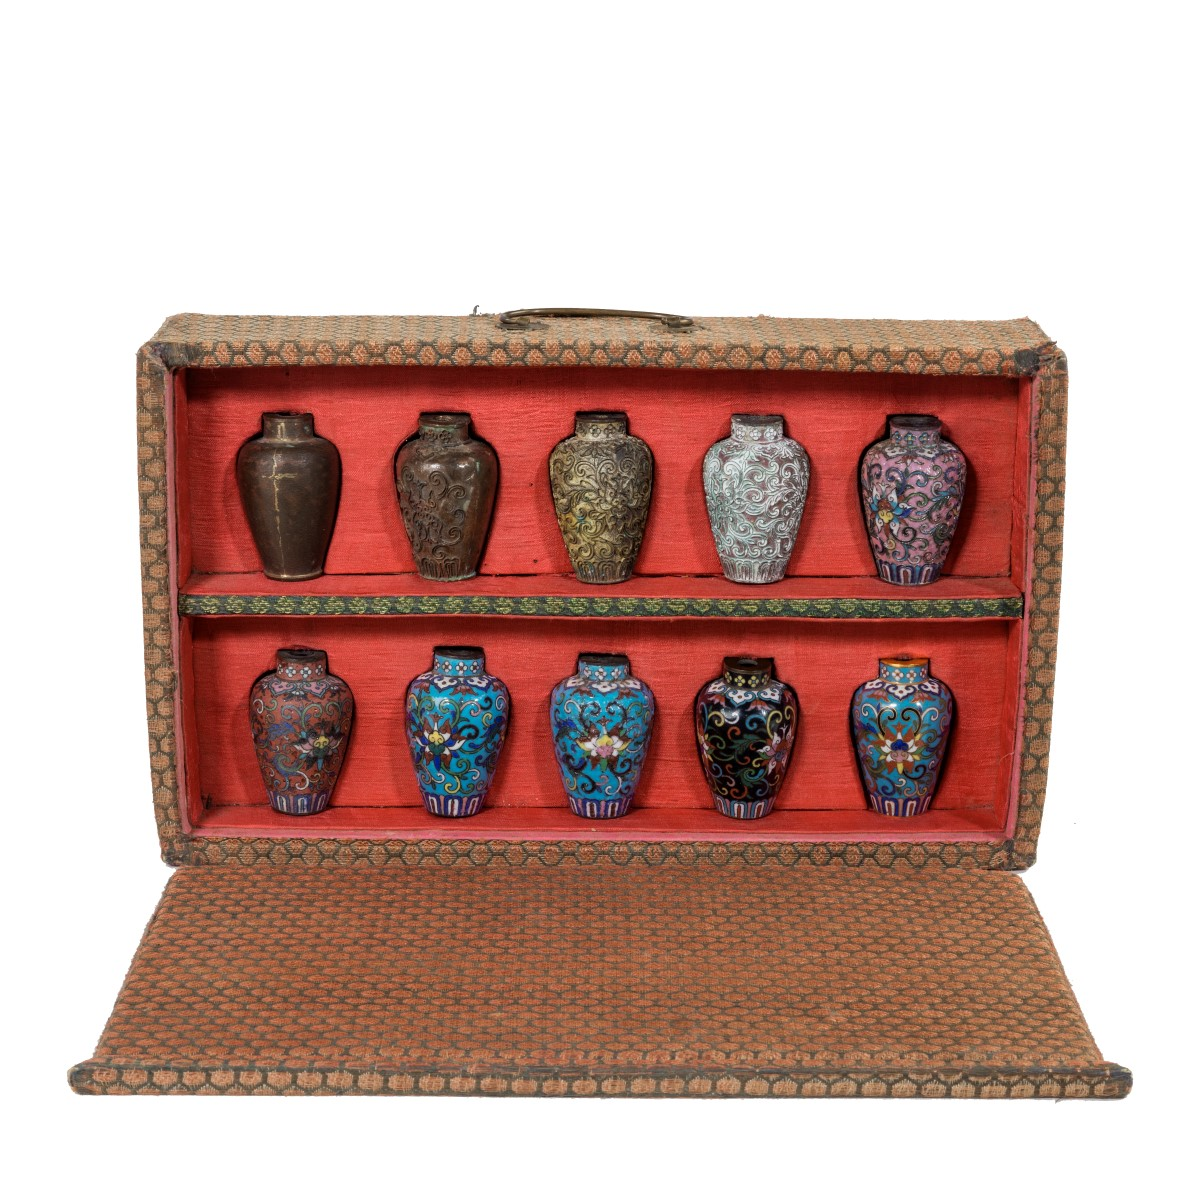 A Japanese cloisonné sample set, comprising 10 small metal vases Meiji period, c1900.